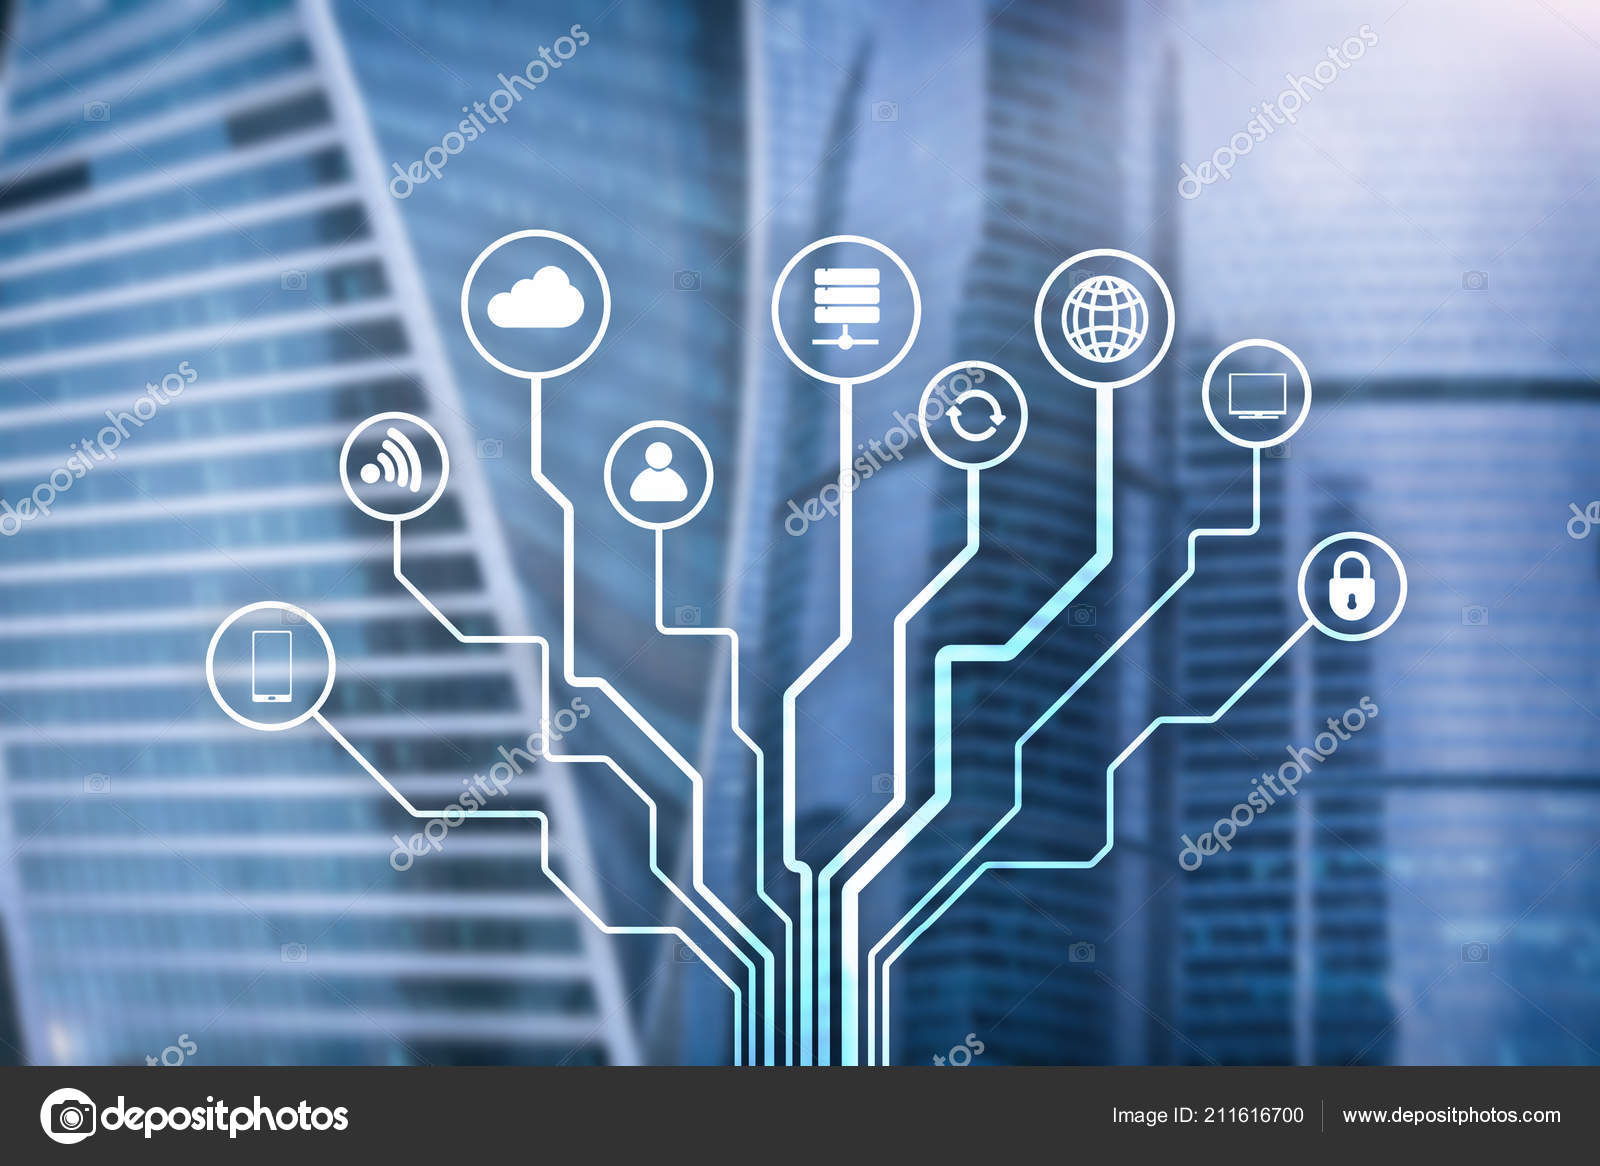 Telecommunication Iot Concept Blurred Business Center Background Circuit Board Virus Text Stock Image Photo